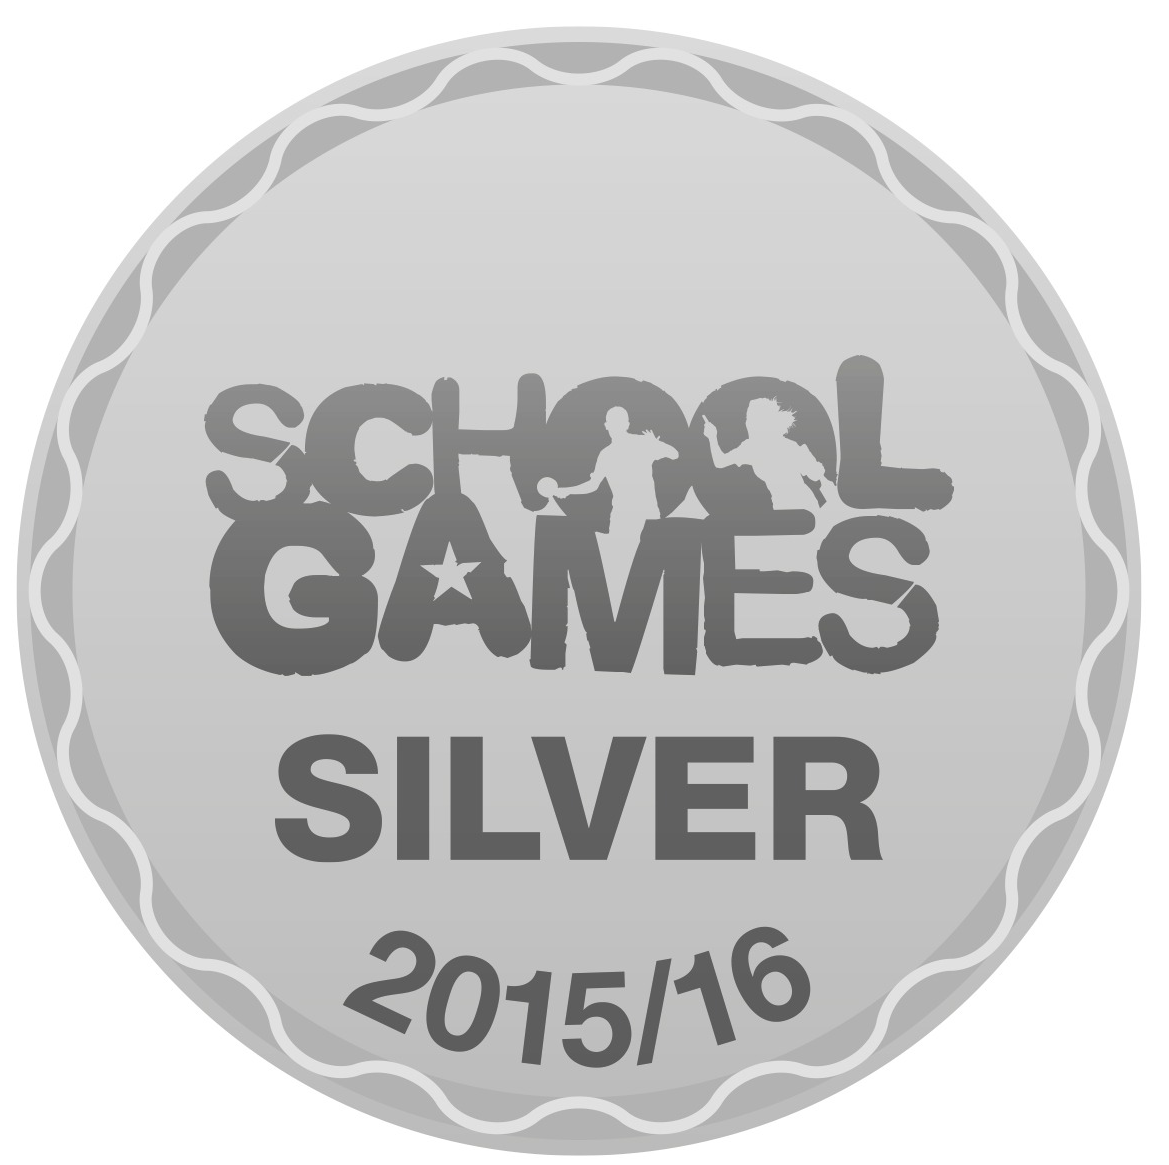 Sainsbury's School Games - Silver